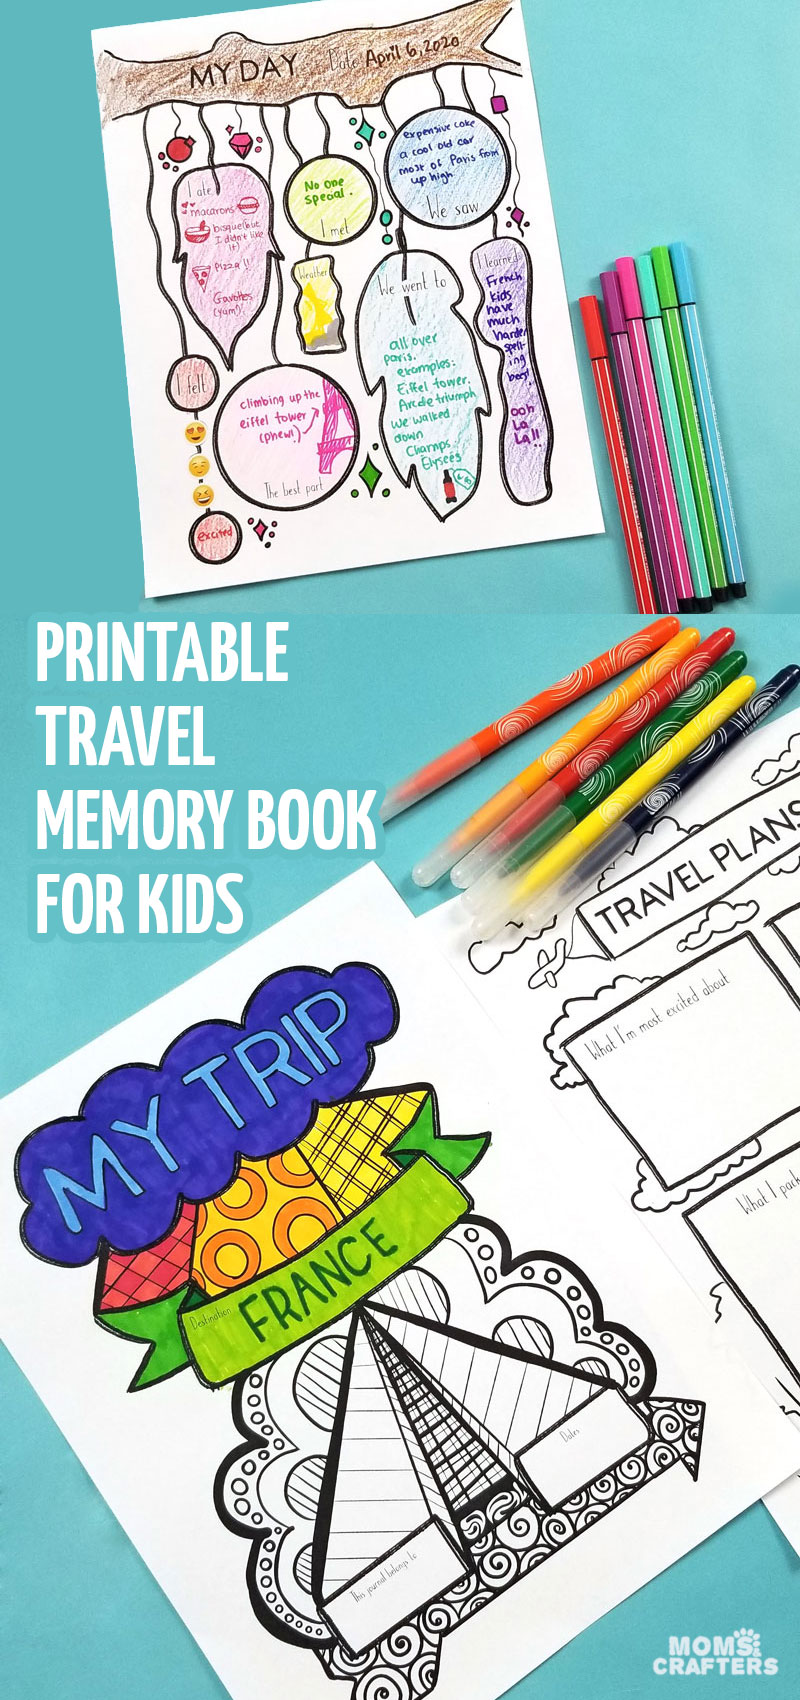 click to print a travel journal for kids - great airplane and road trip activities for kids ages 8+ teens and tweens! This travel coloring book and memory book is fun and educational for travel with kids.